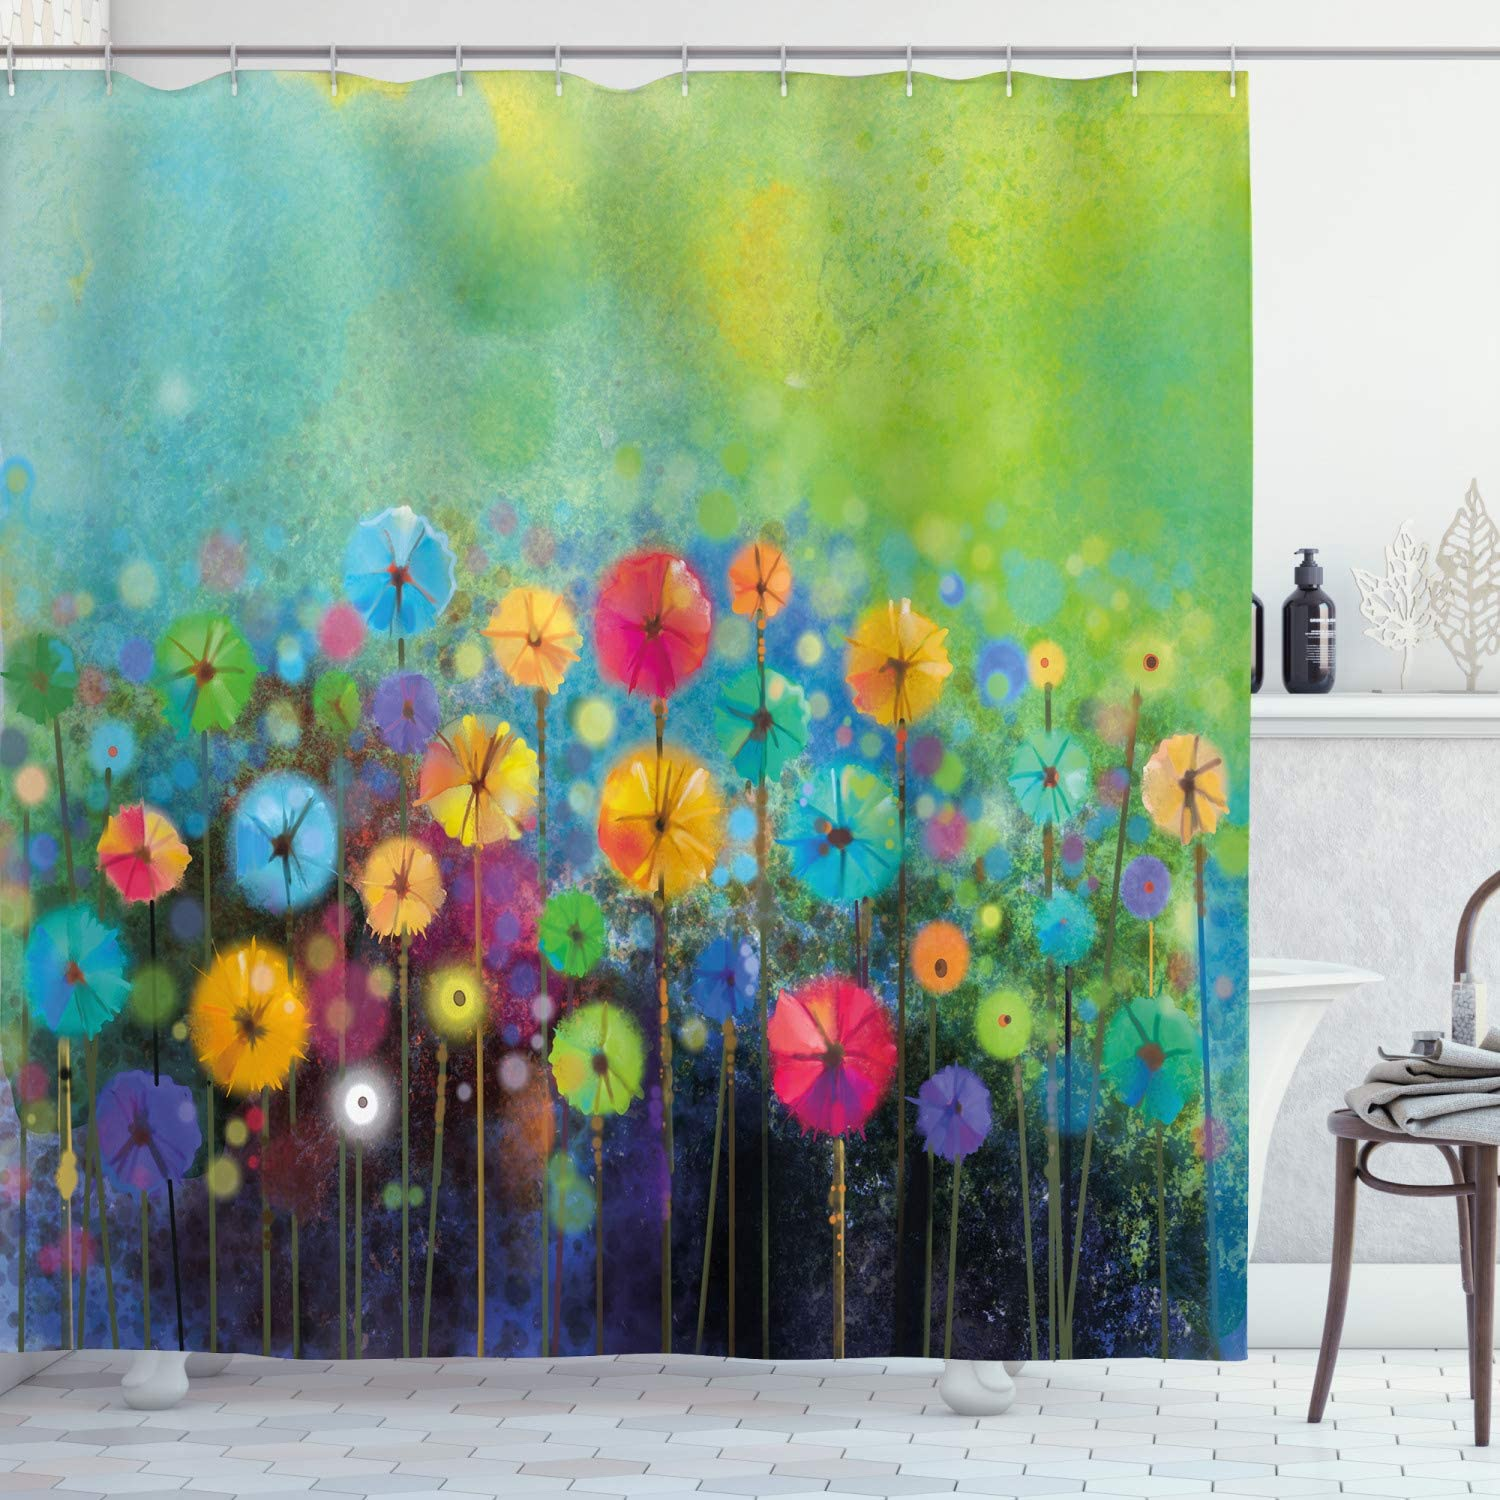 Ambesonne Flower Shower Curtain, Dandelions Featured in Garden with Brushstrokes Watercolored Abstract Landscape Art, Cloth Fabric Bathroom Decor Set with Hooks, 70